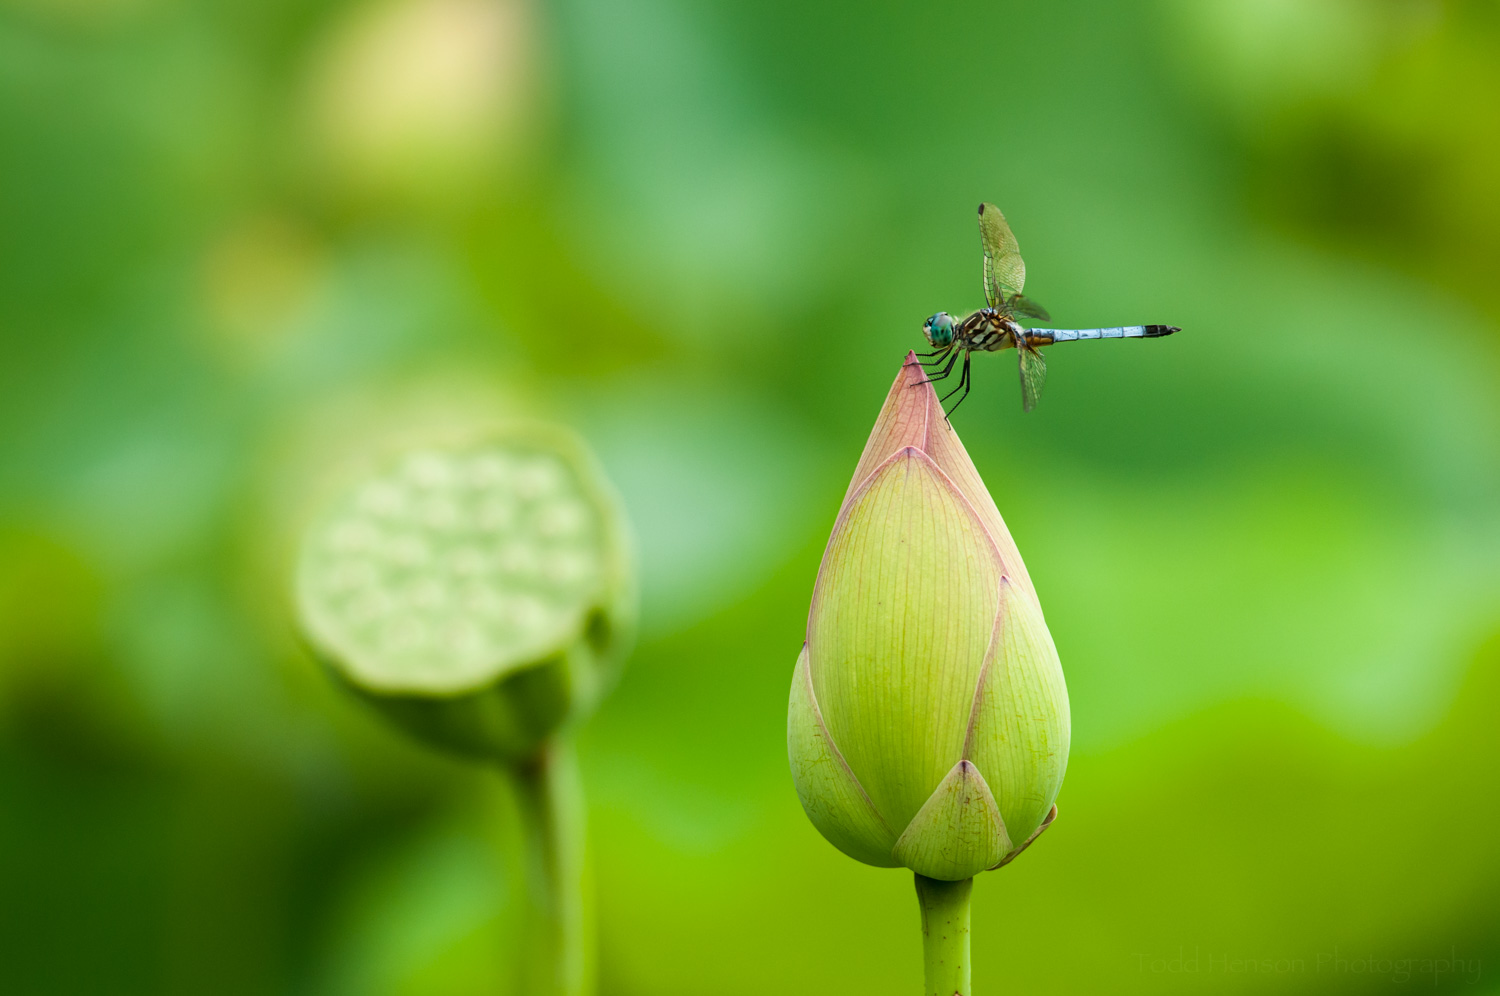 Dragonfly on unopened lotus bloom, with seed pod in the background